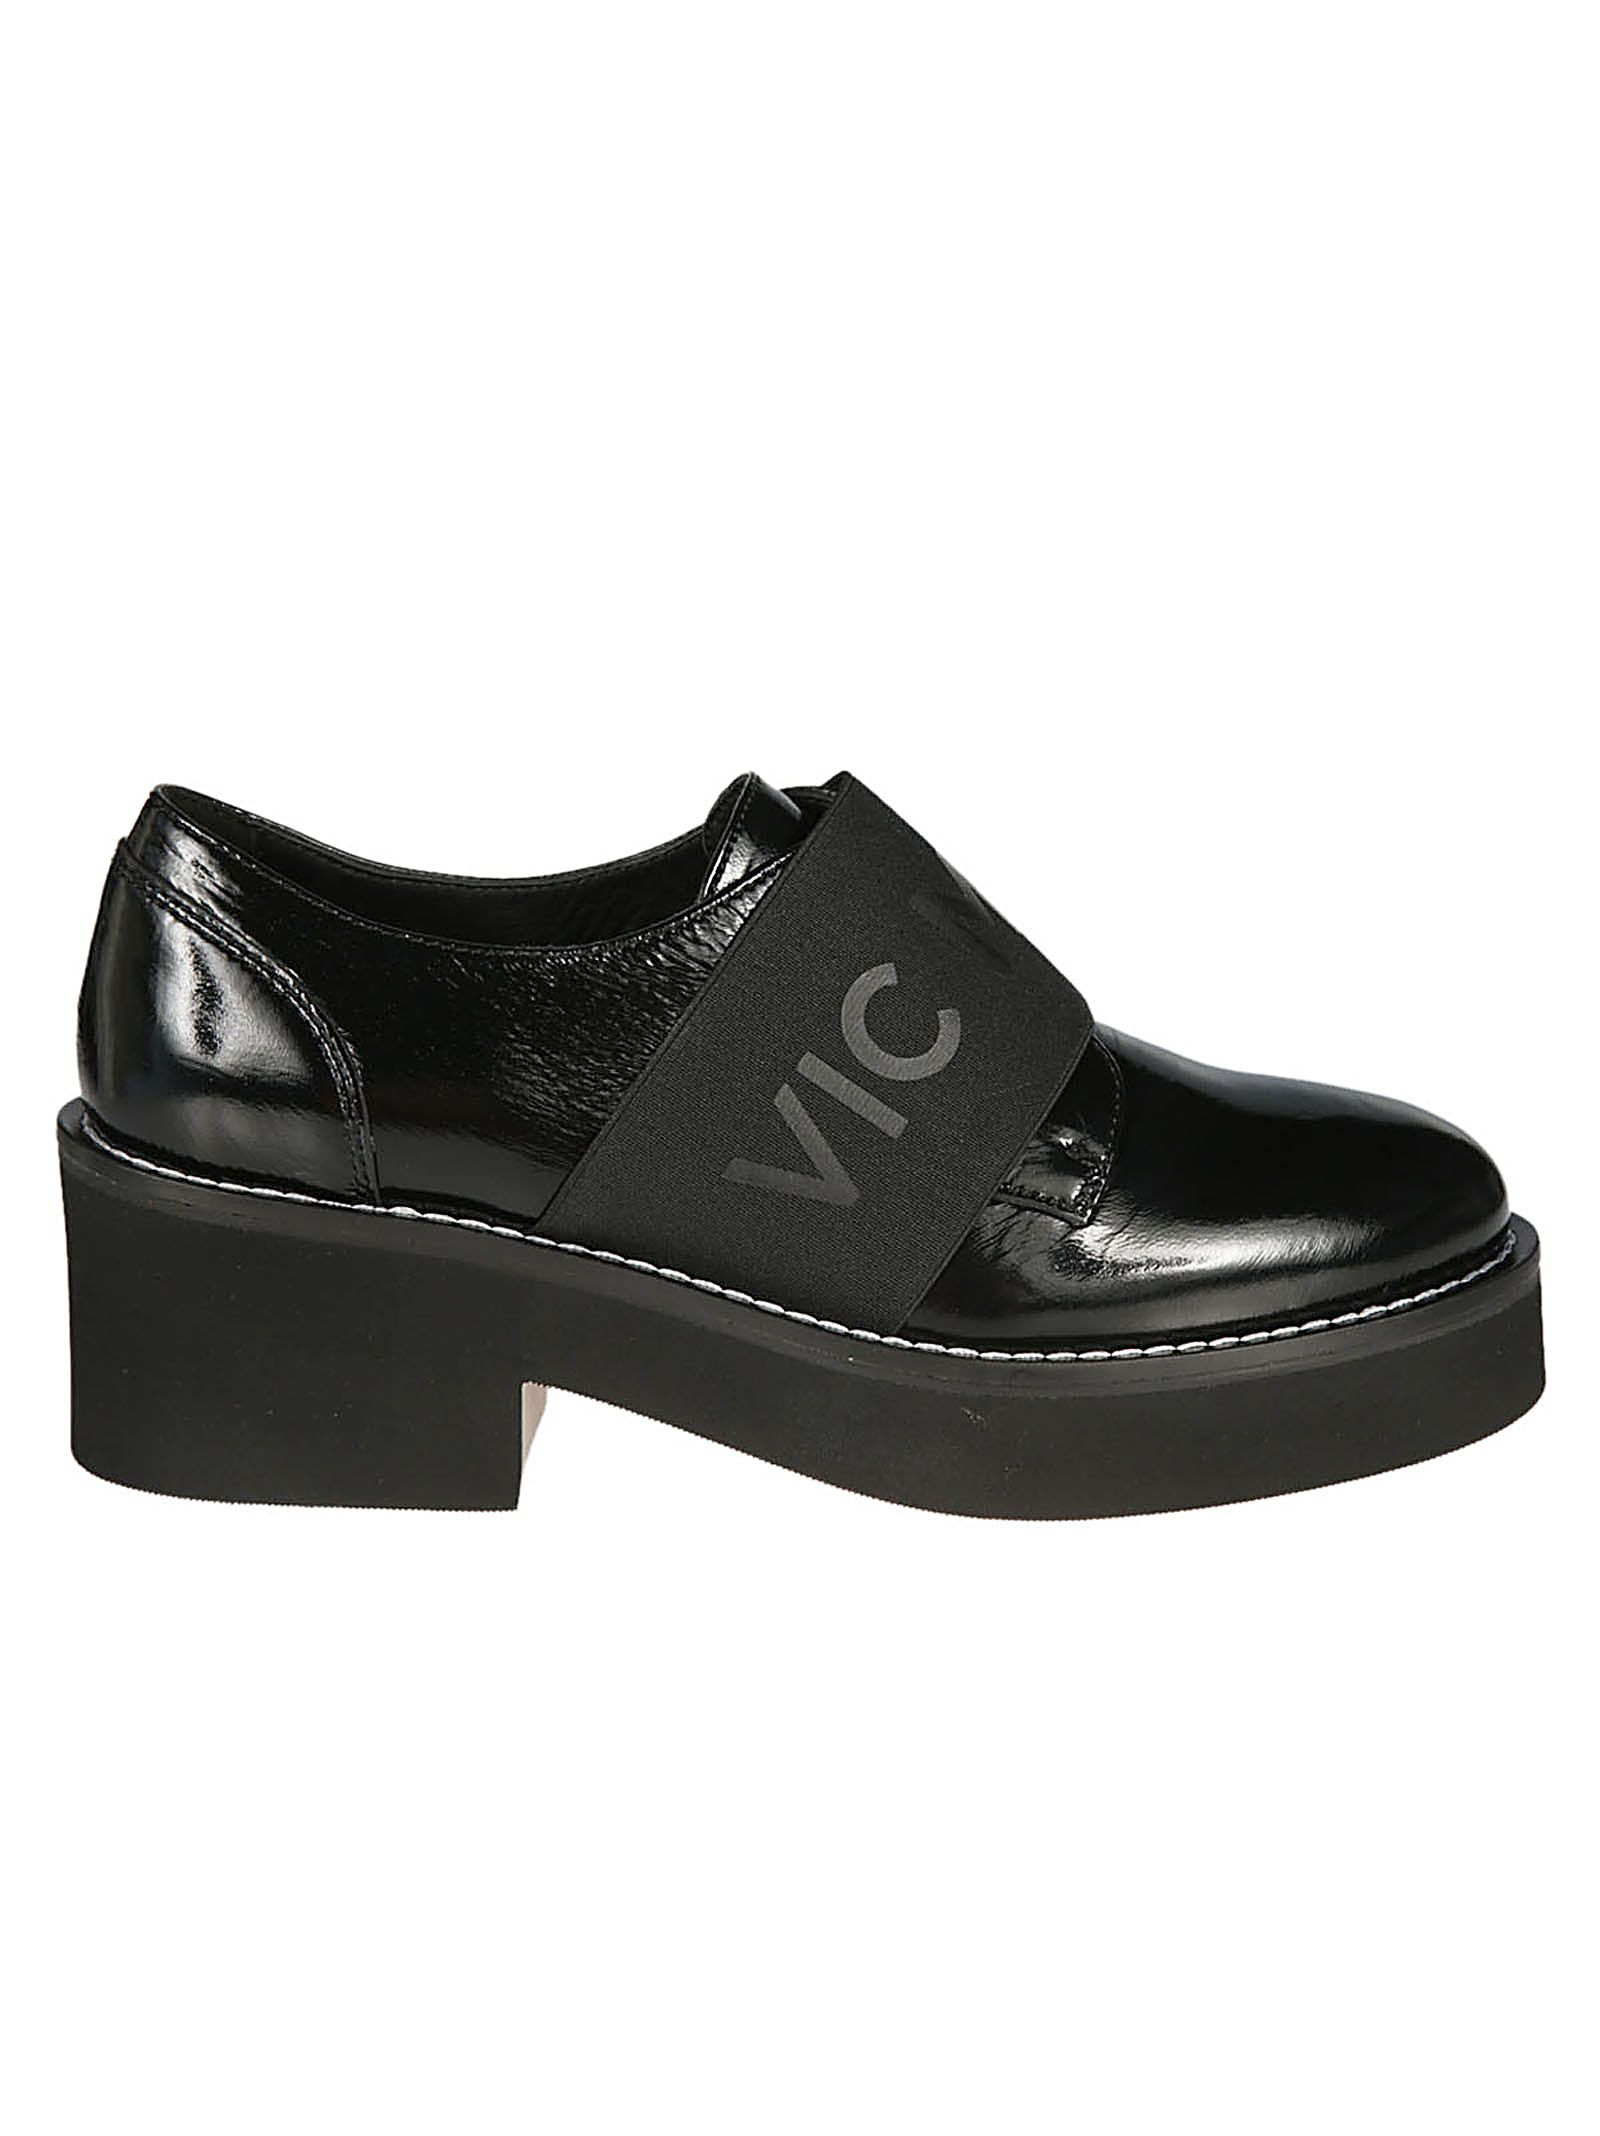 VIC MATIE Vic Matie' Logo Band Wedge Loafers in Vernice Nero